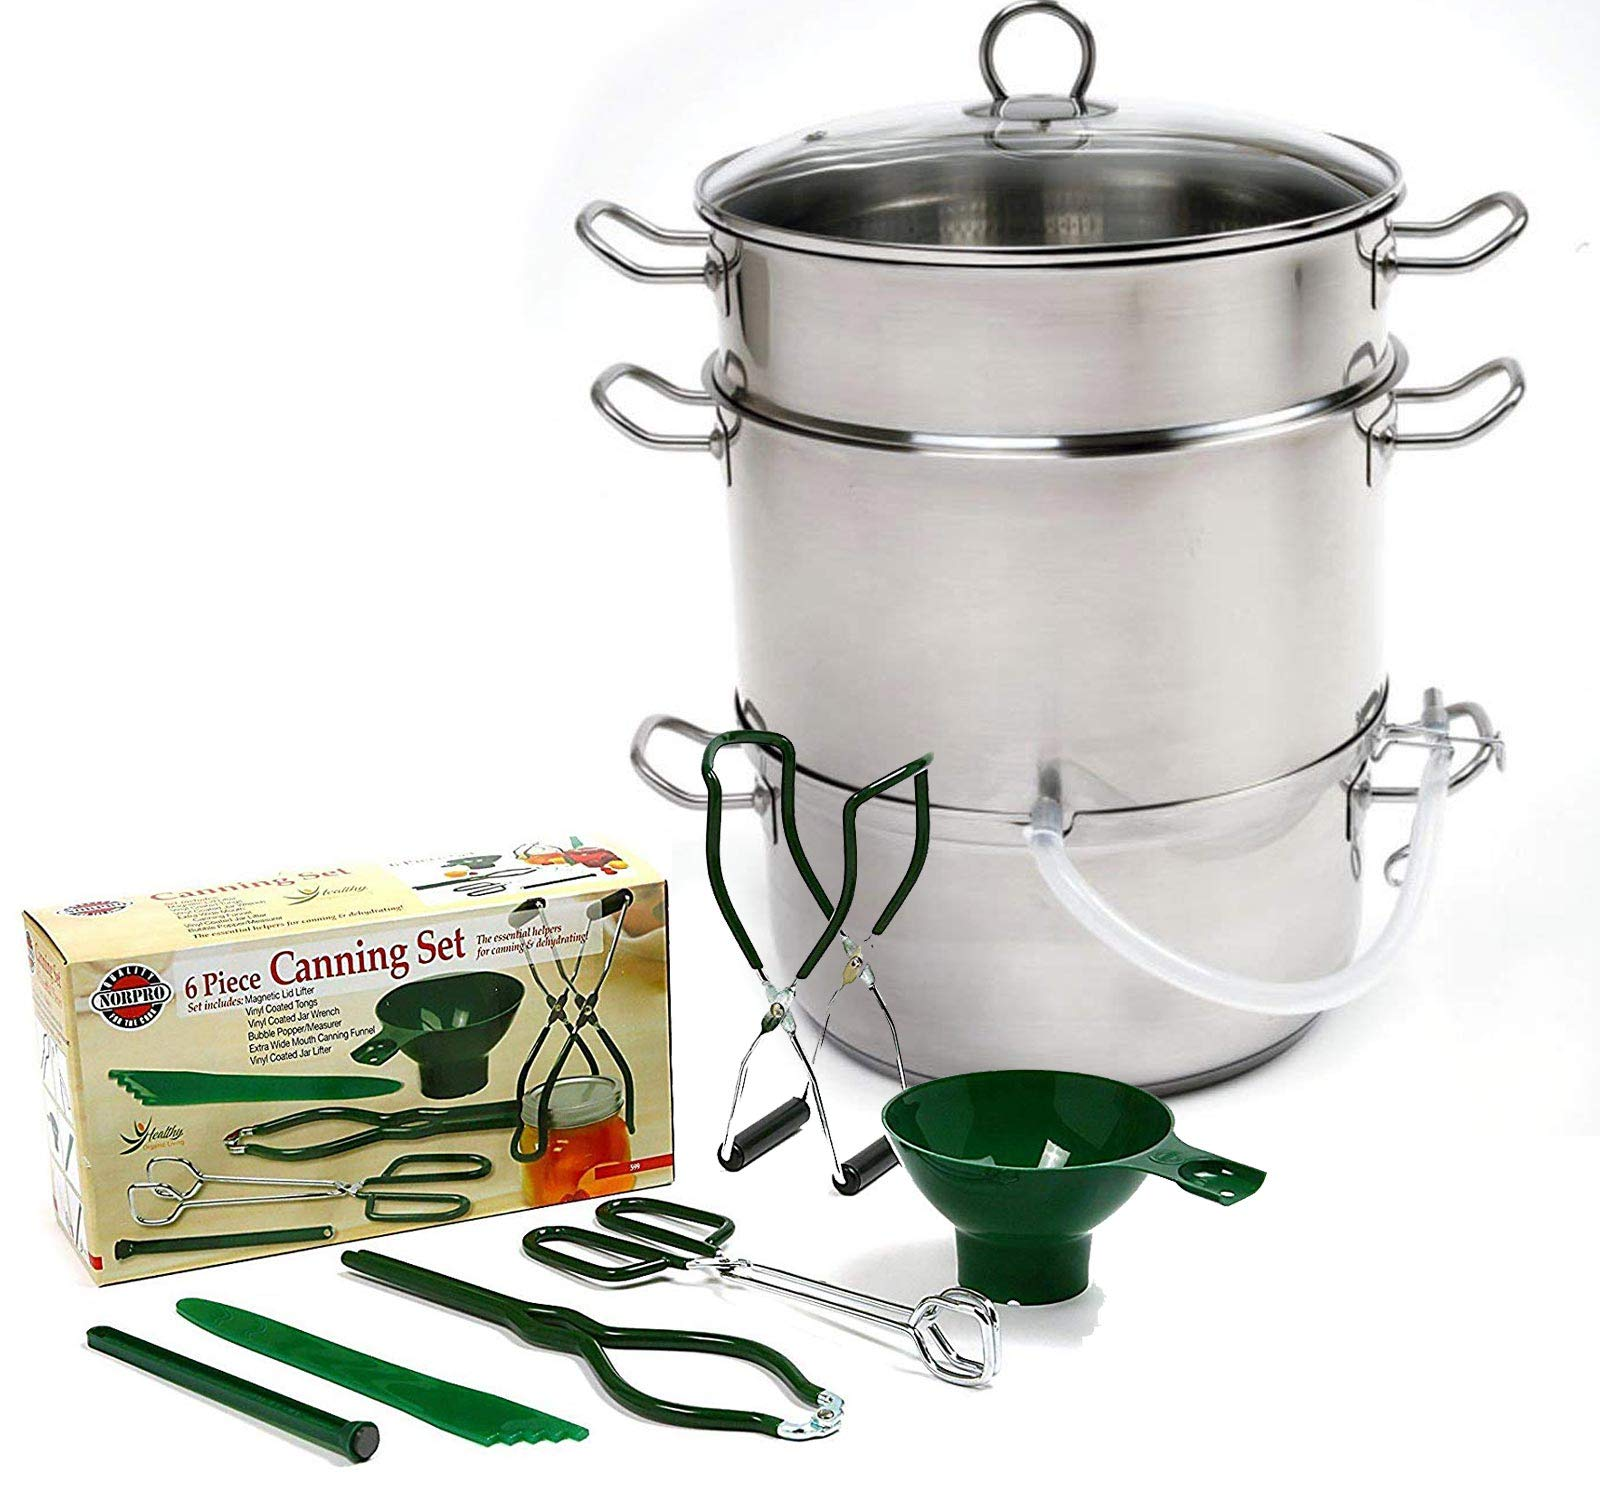 Norpro Stainless Steamer/Juicer Bundle with Norpro 6pc Canning Essentials - Stainless Steel